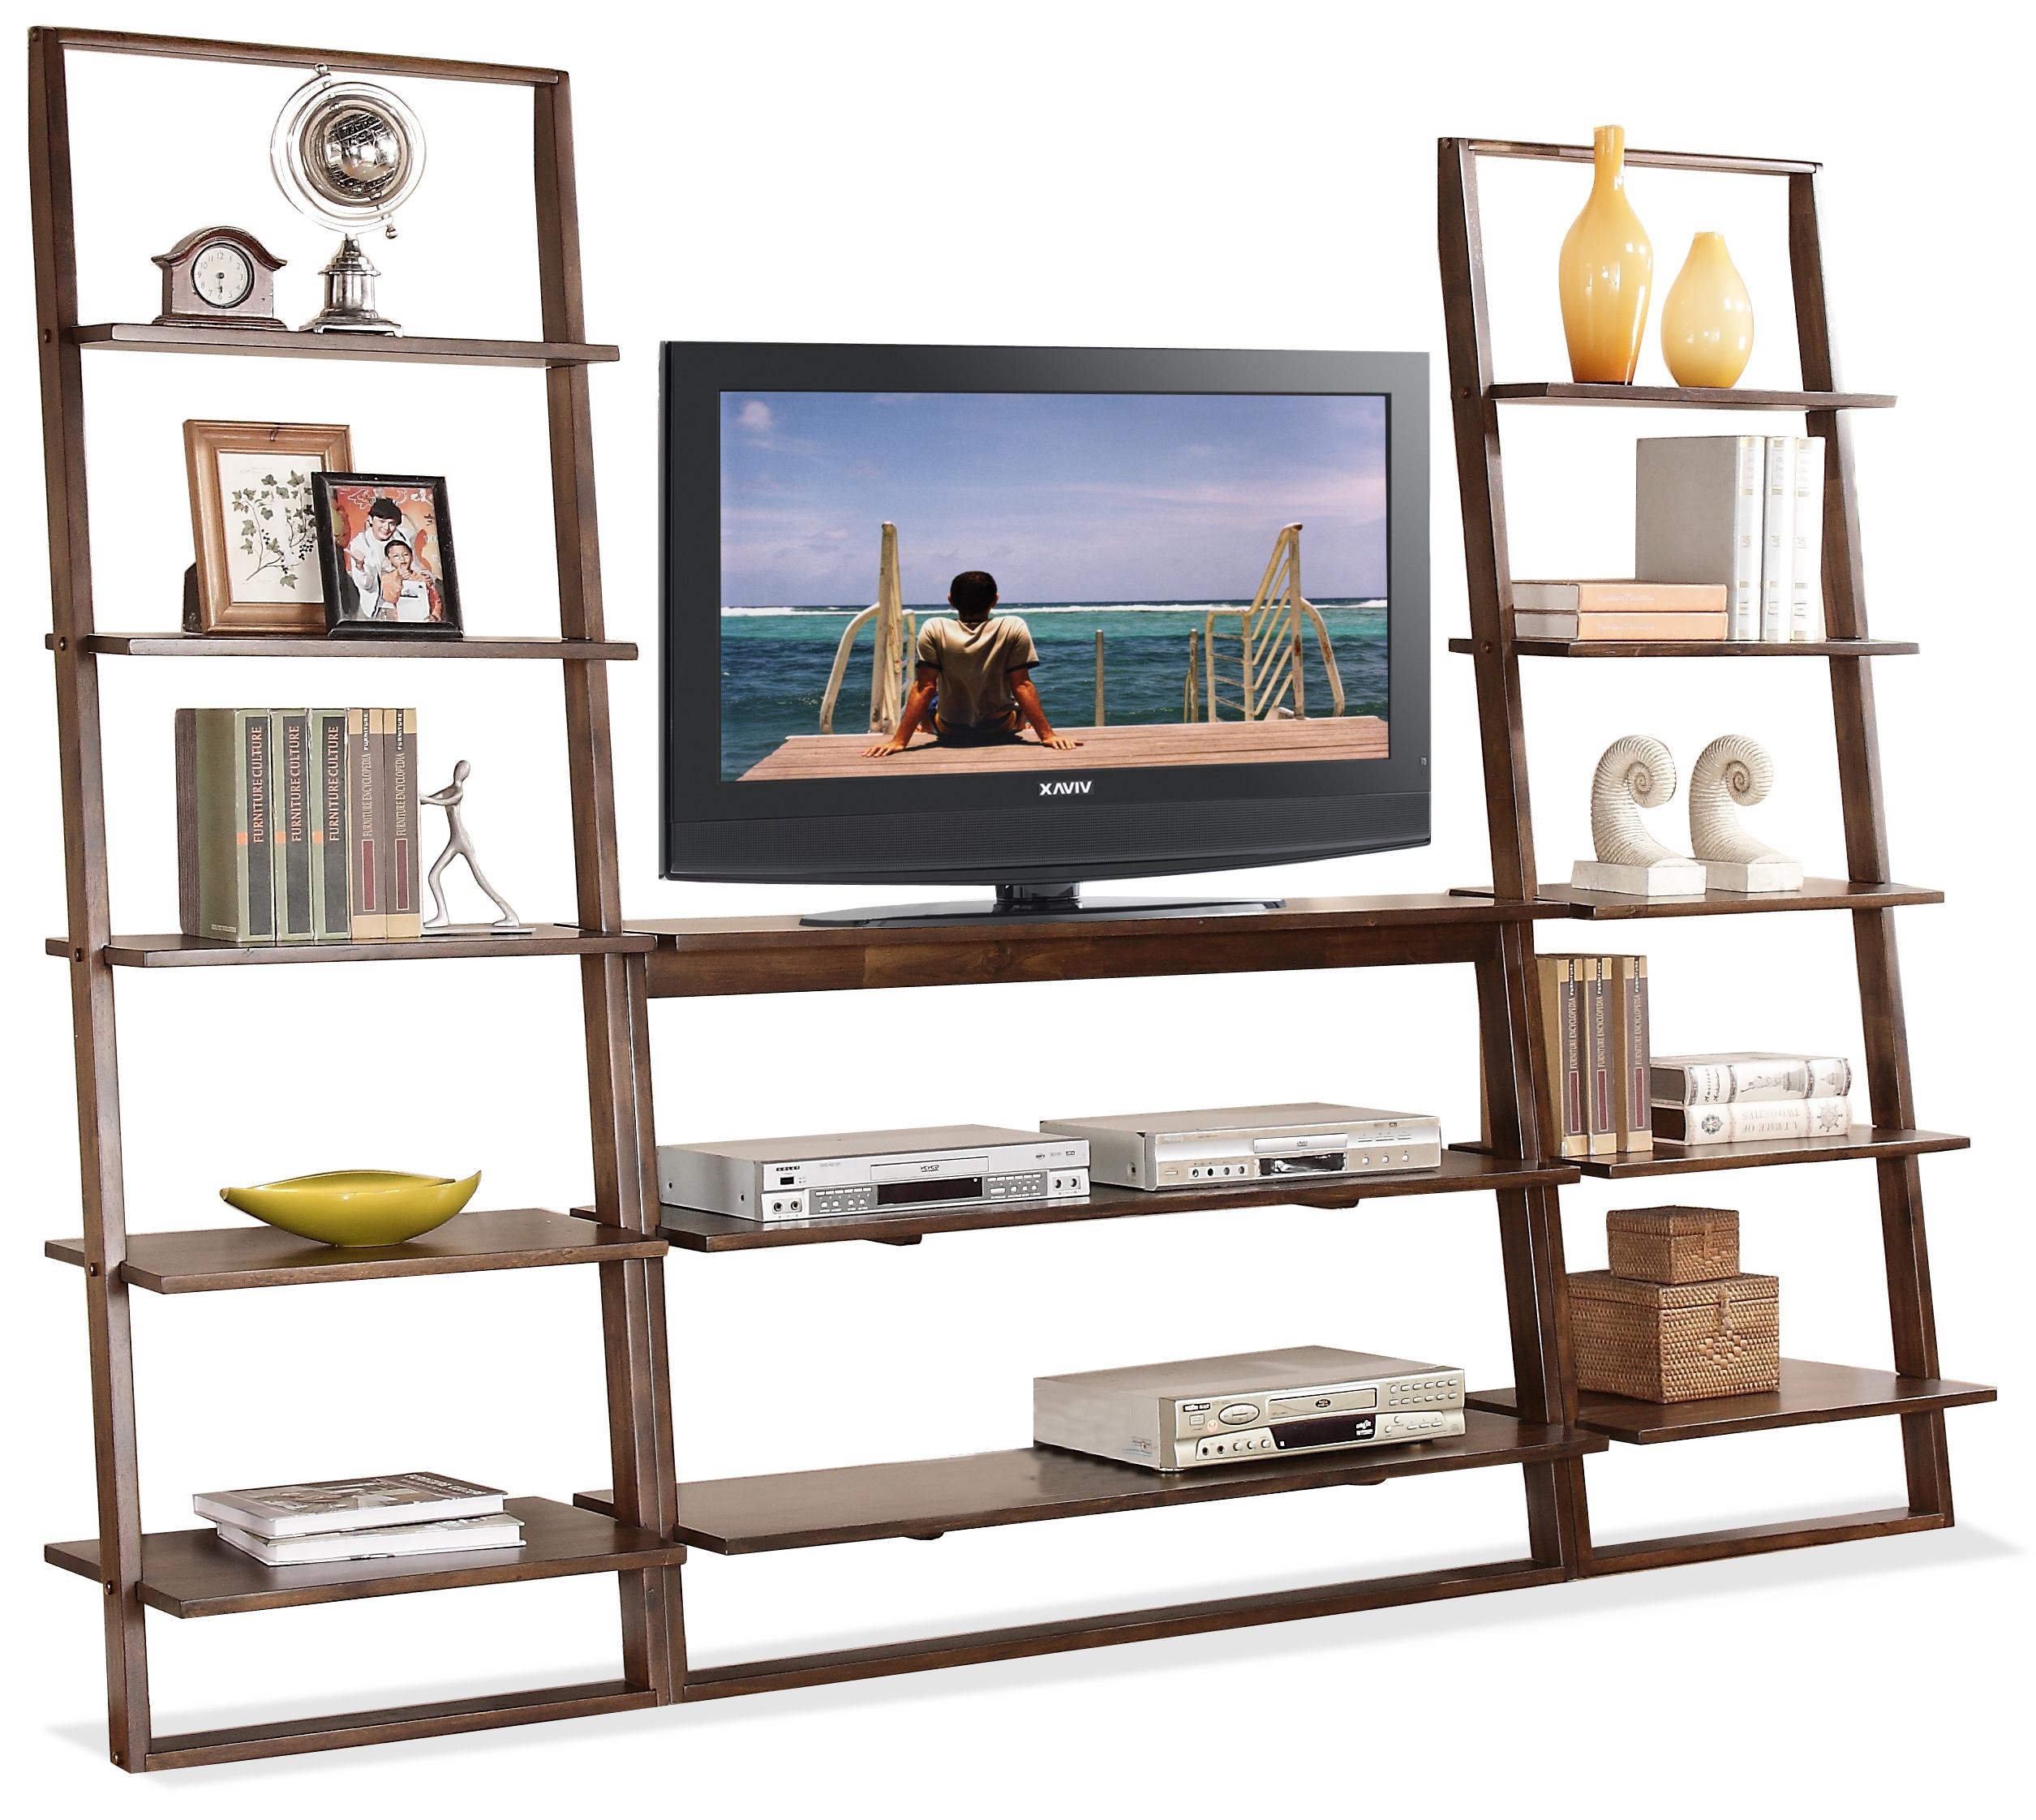 Riverside Furniture Lean Living Entertainment Wall Unit - Item Number: 27843+2x37